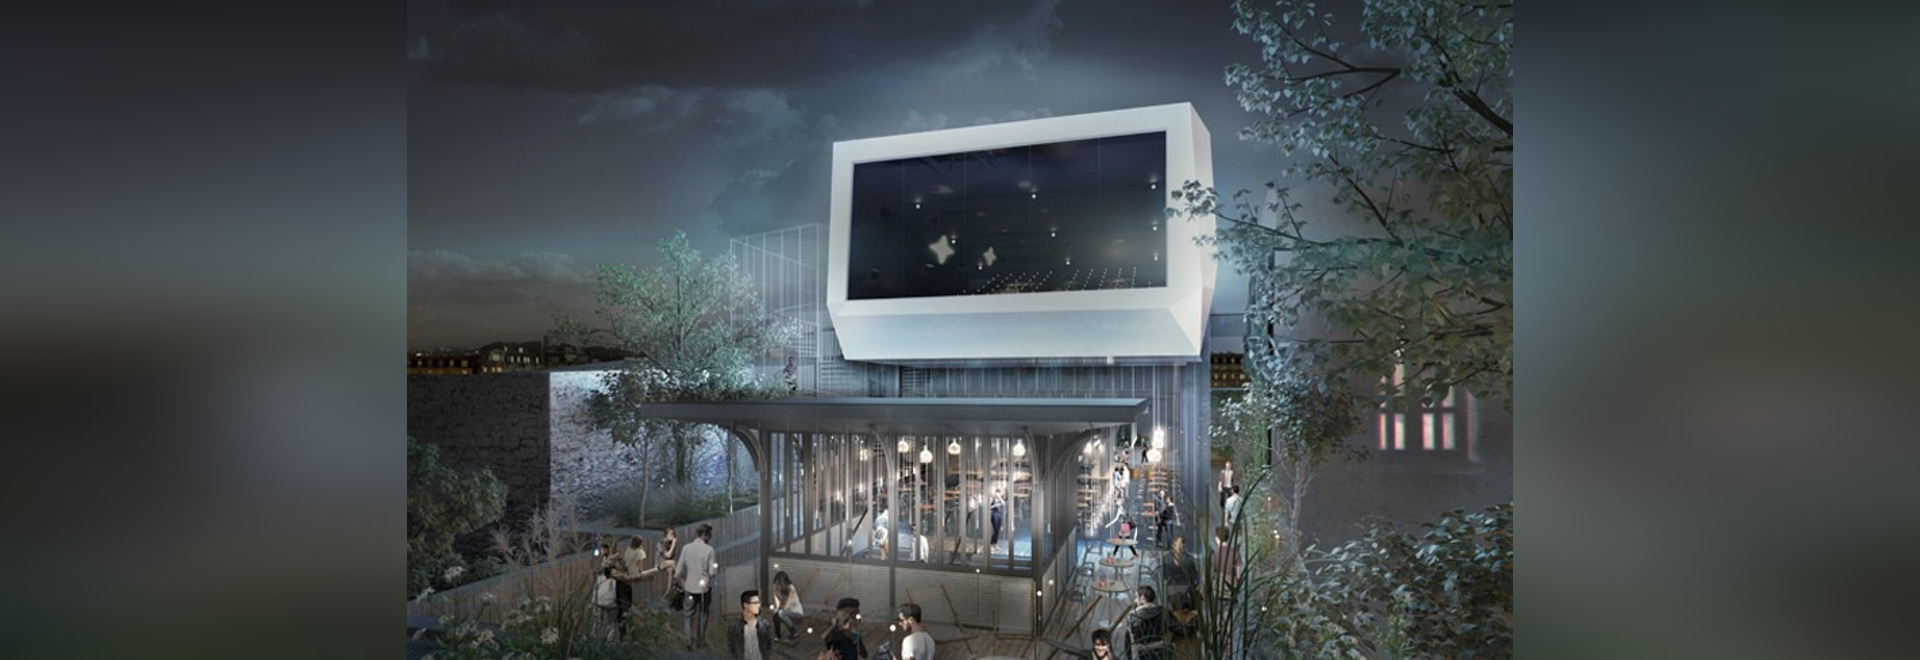 olivier palatre's cinema for réinventer paris topped with rooftop terrace